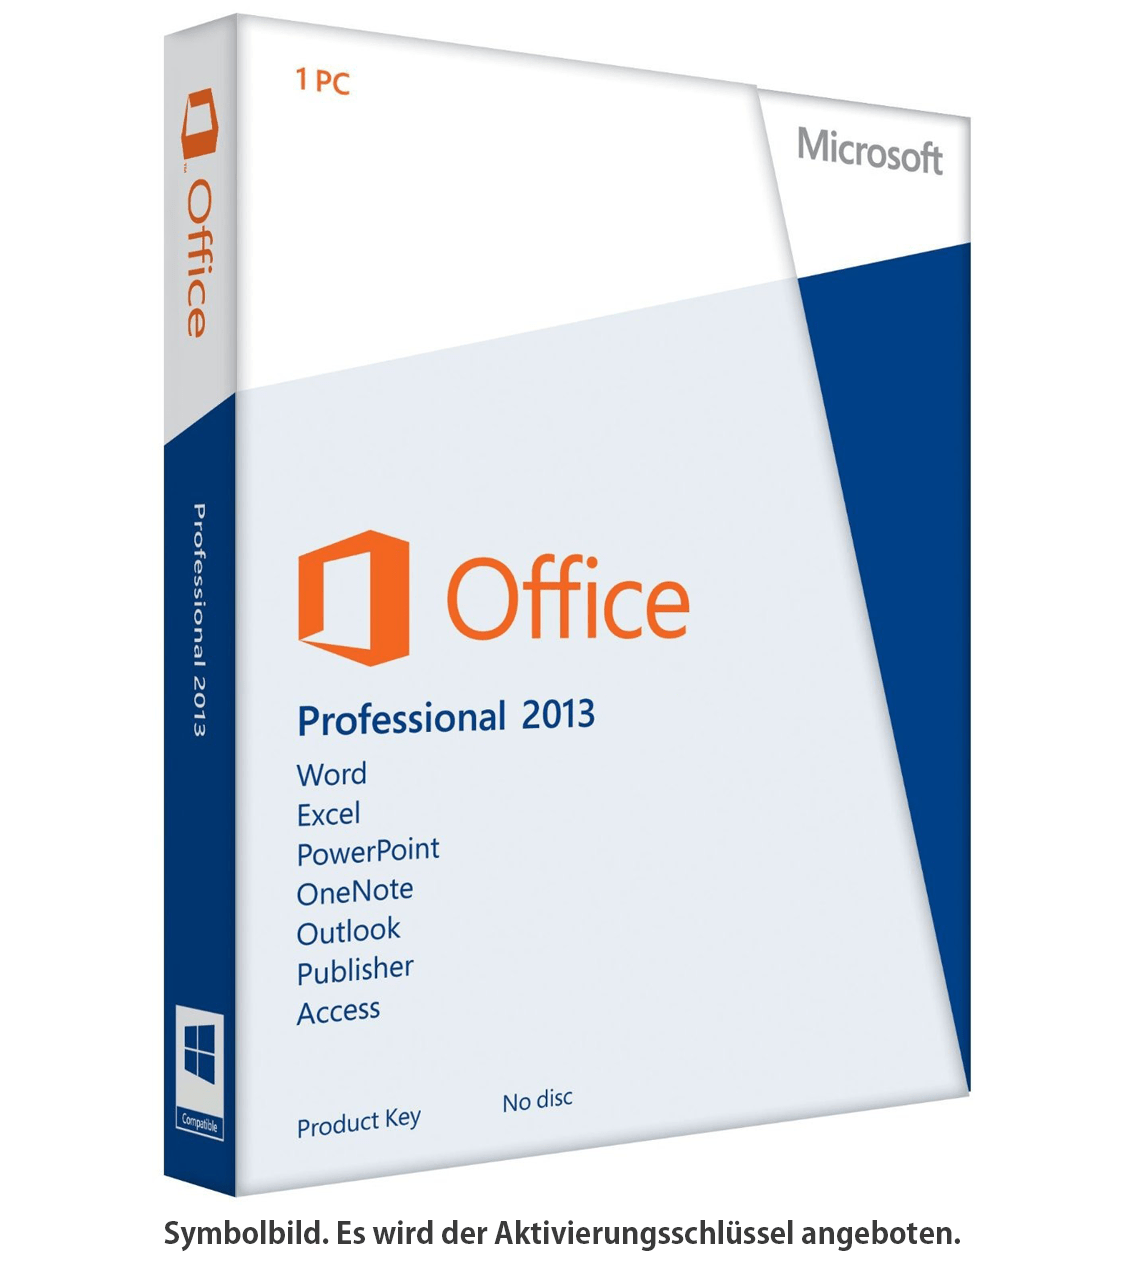 Office Günstig Microsoft Office Professional 2013 Günstig Kaufen Softwareninja De